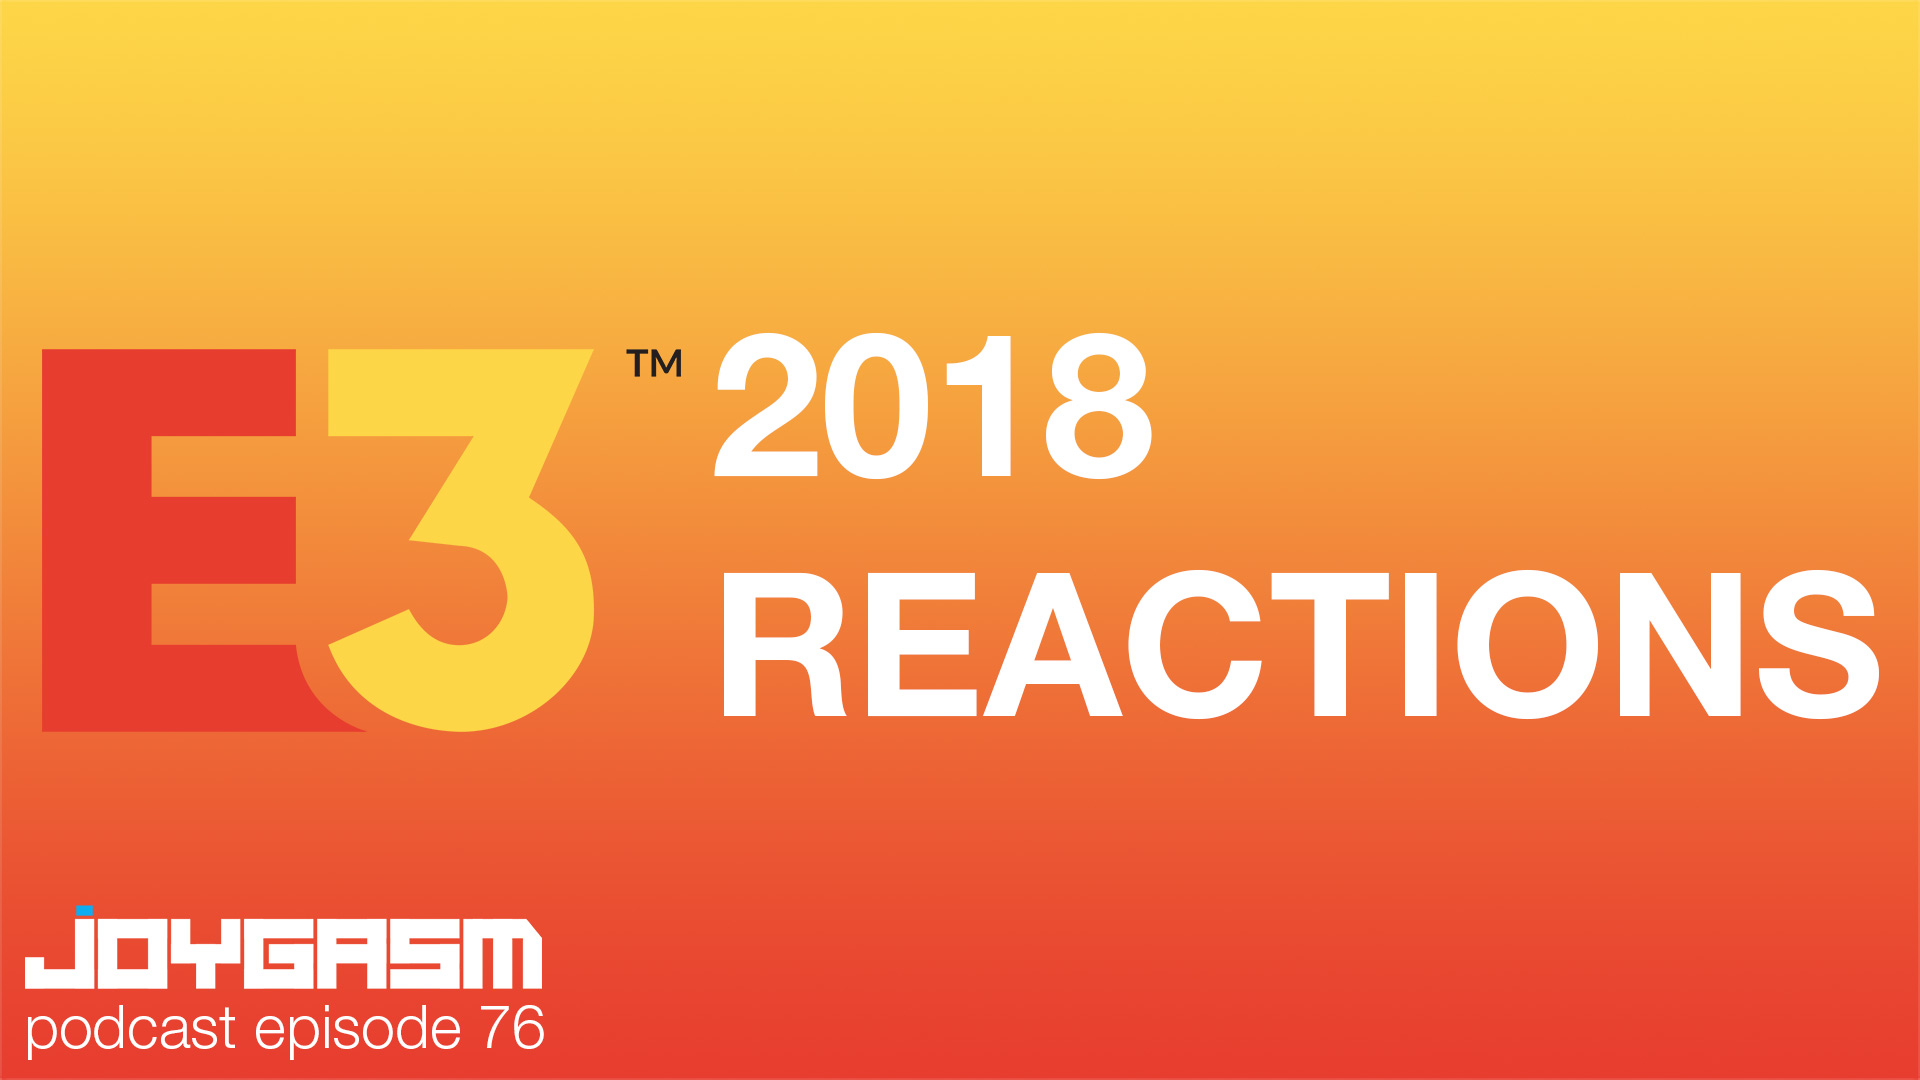 Ep. 76: Our E3 2018 Reactions